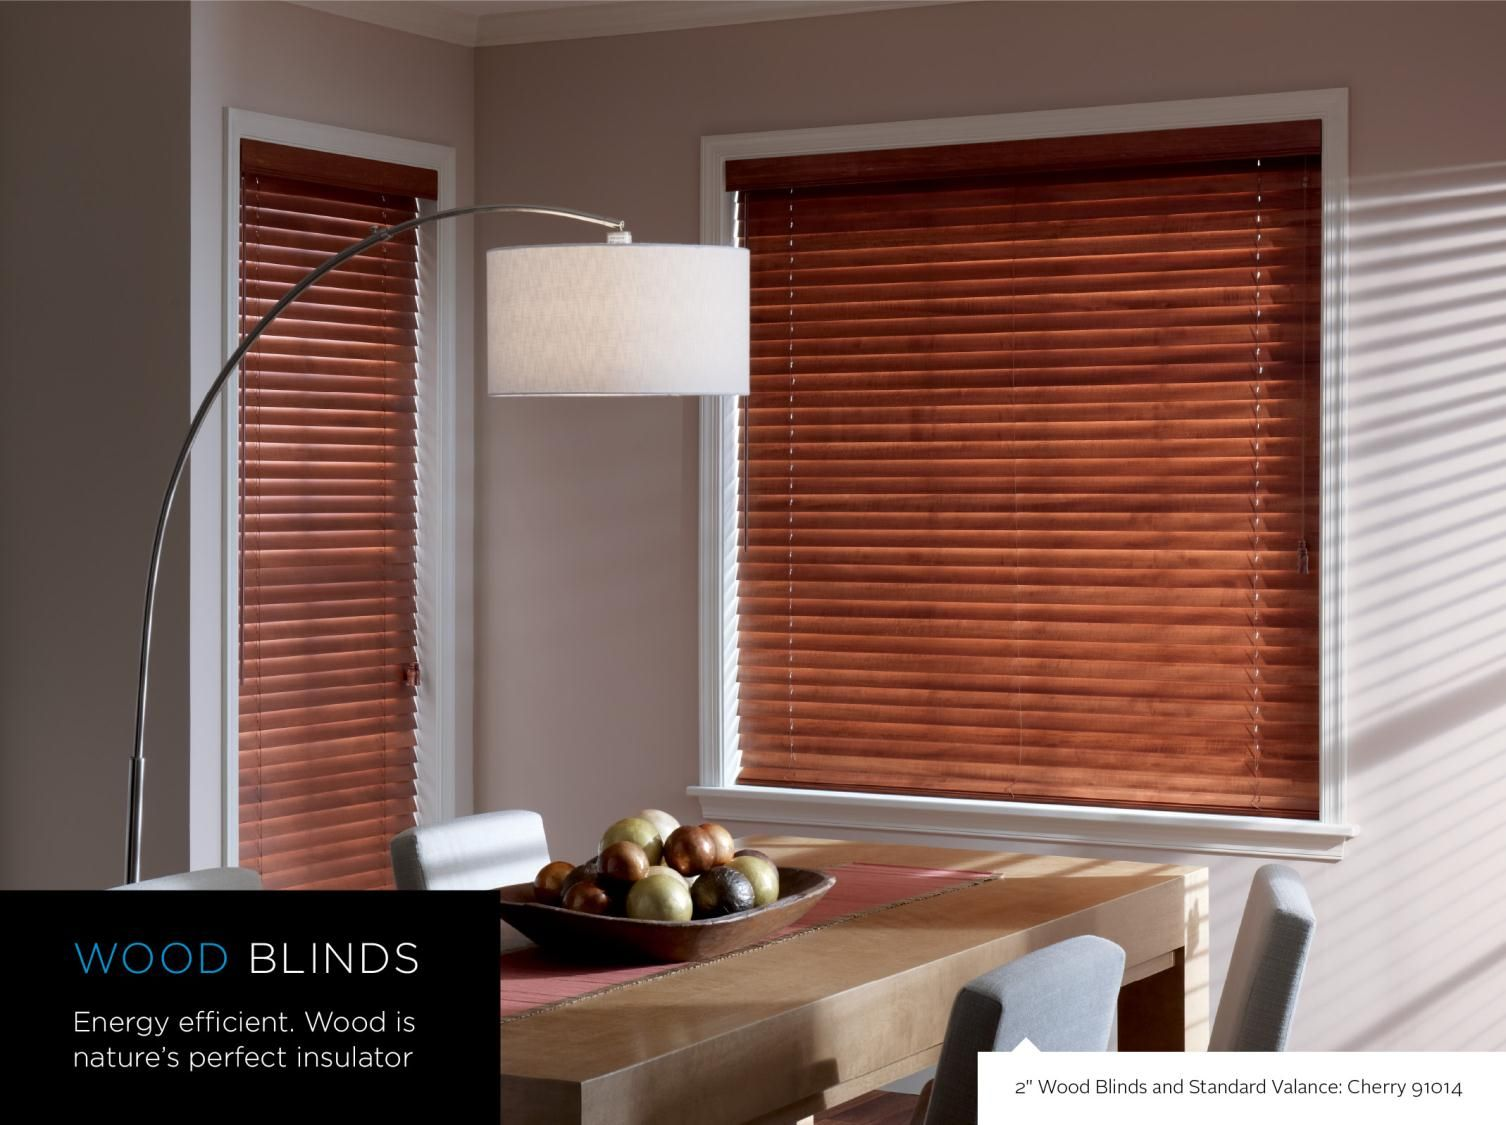 wirral blinds blind service repairs jim call s for sales sale cleaning